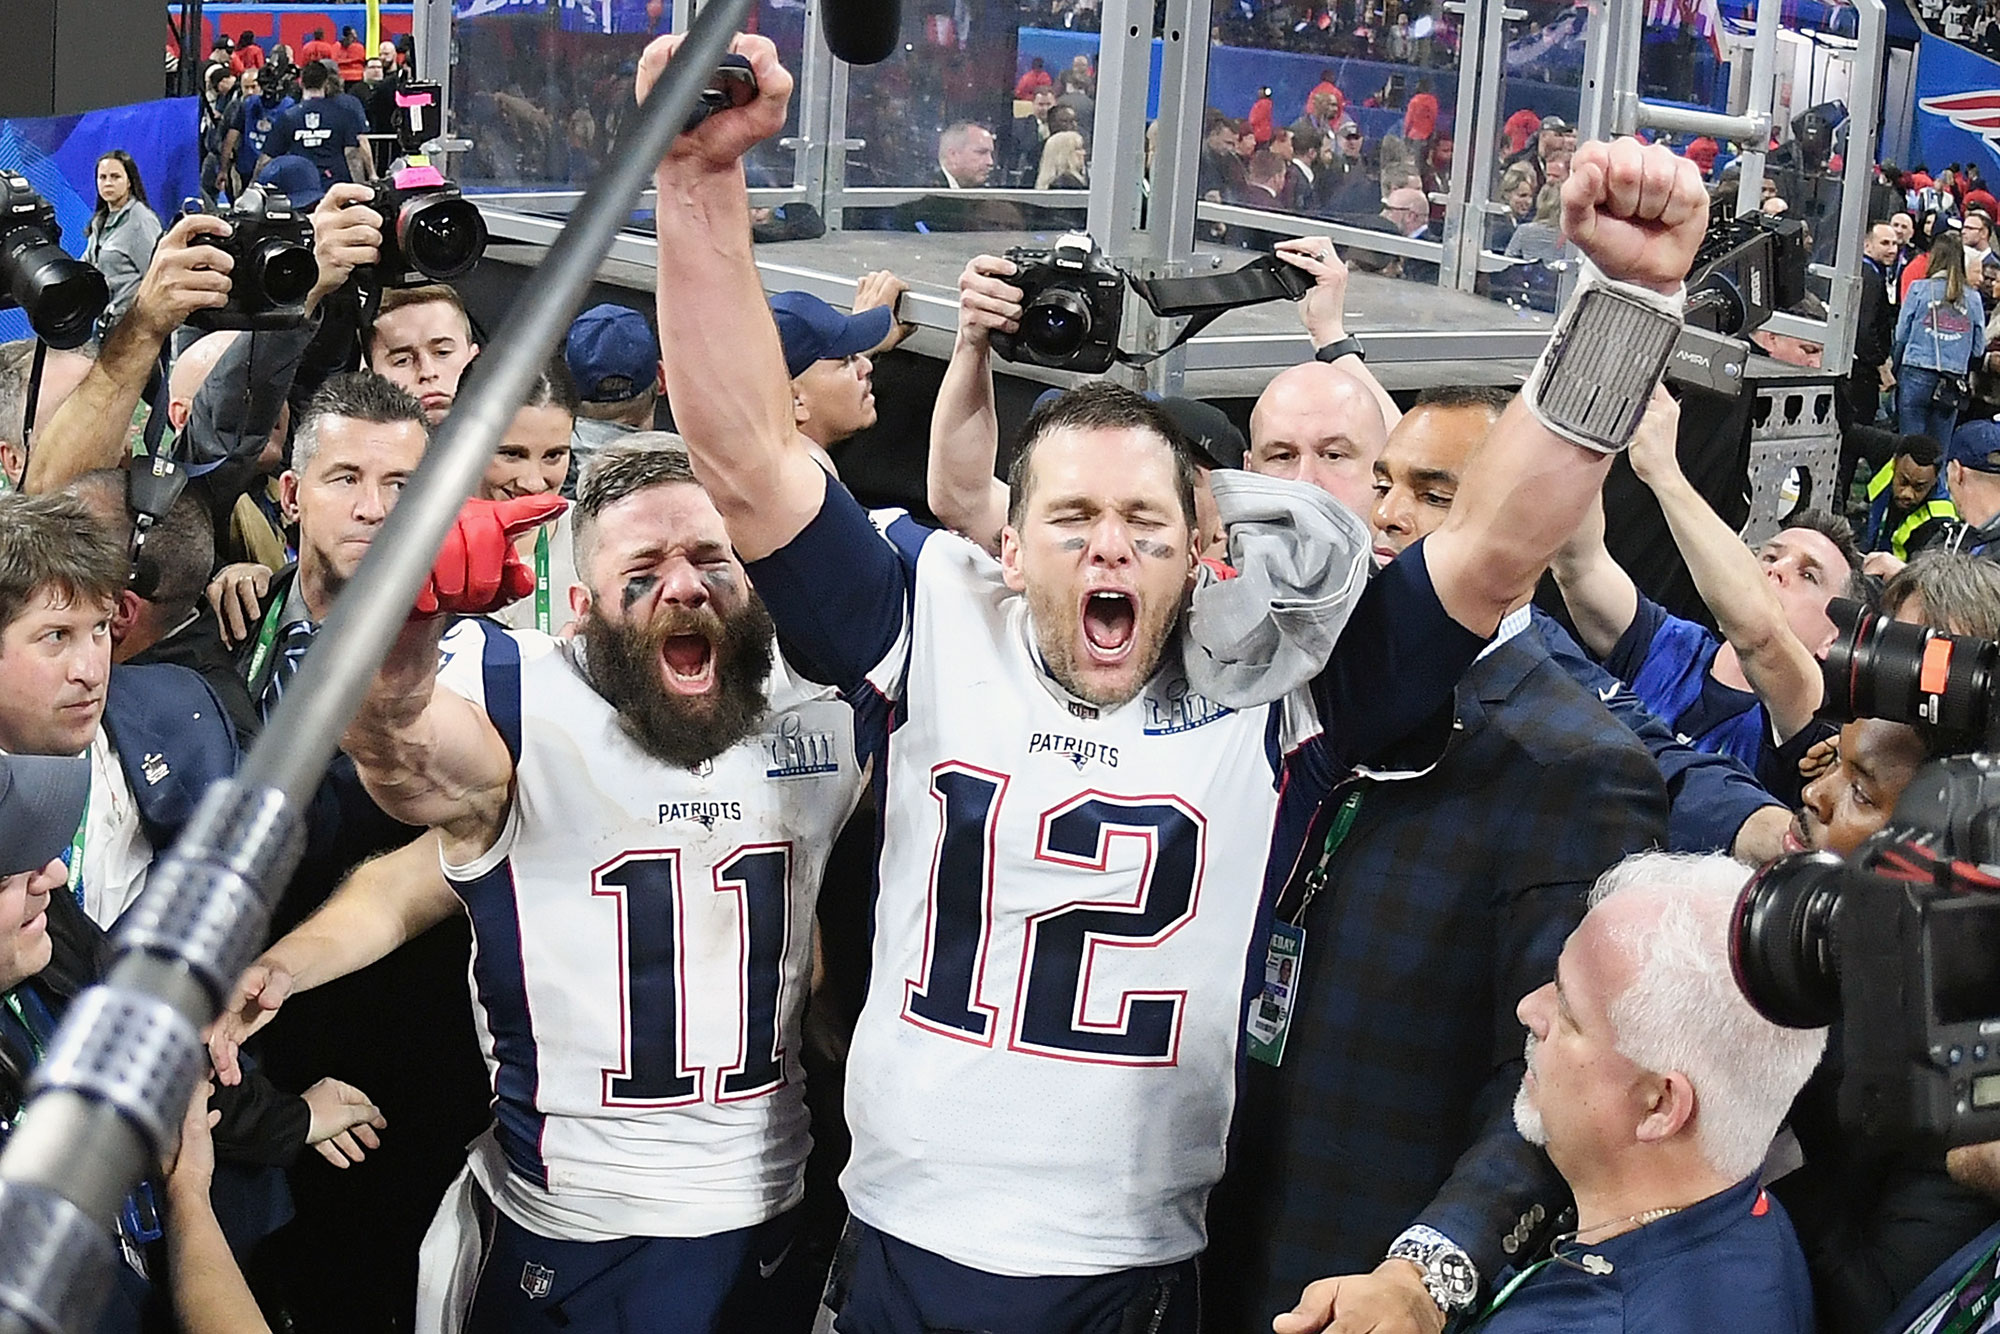 The Patriots win!… Again. Who would of thought?